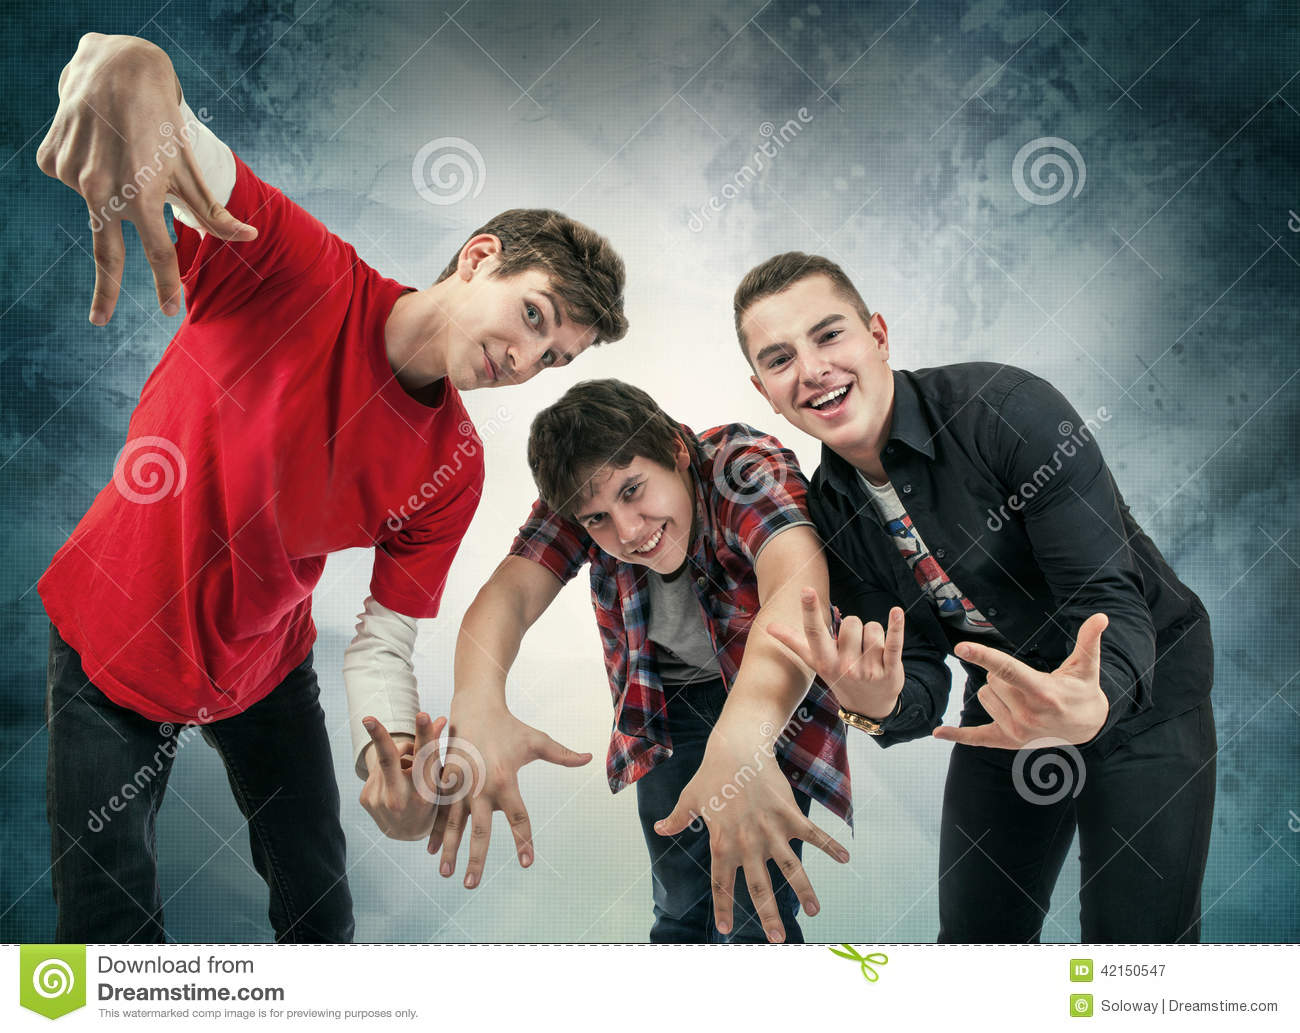 Three Young Man In Fun Hip Hop Poses Stock Image - Image of